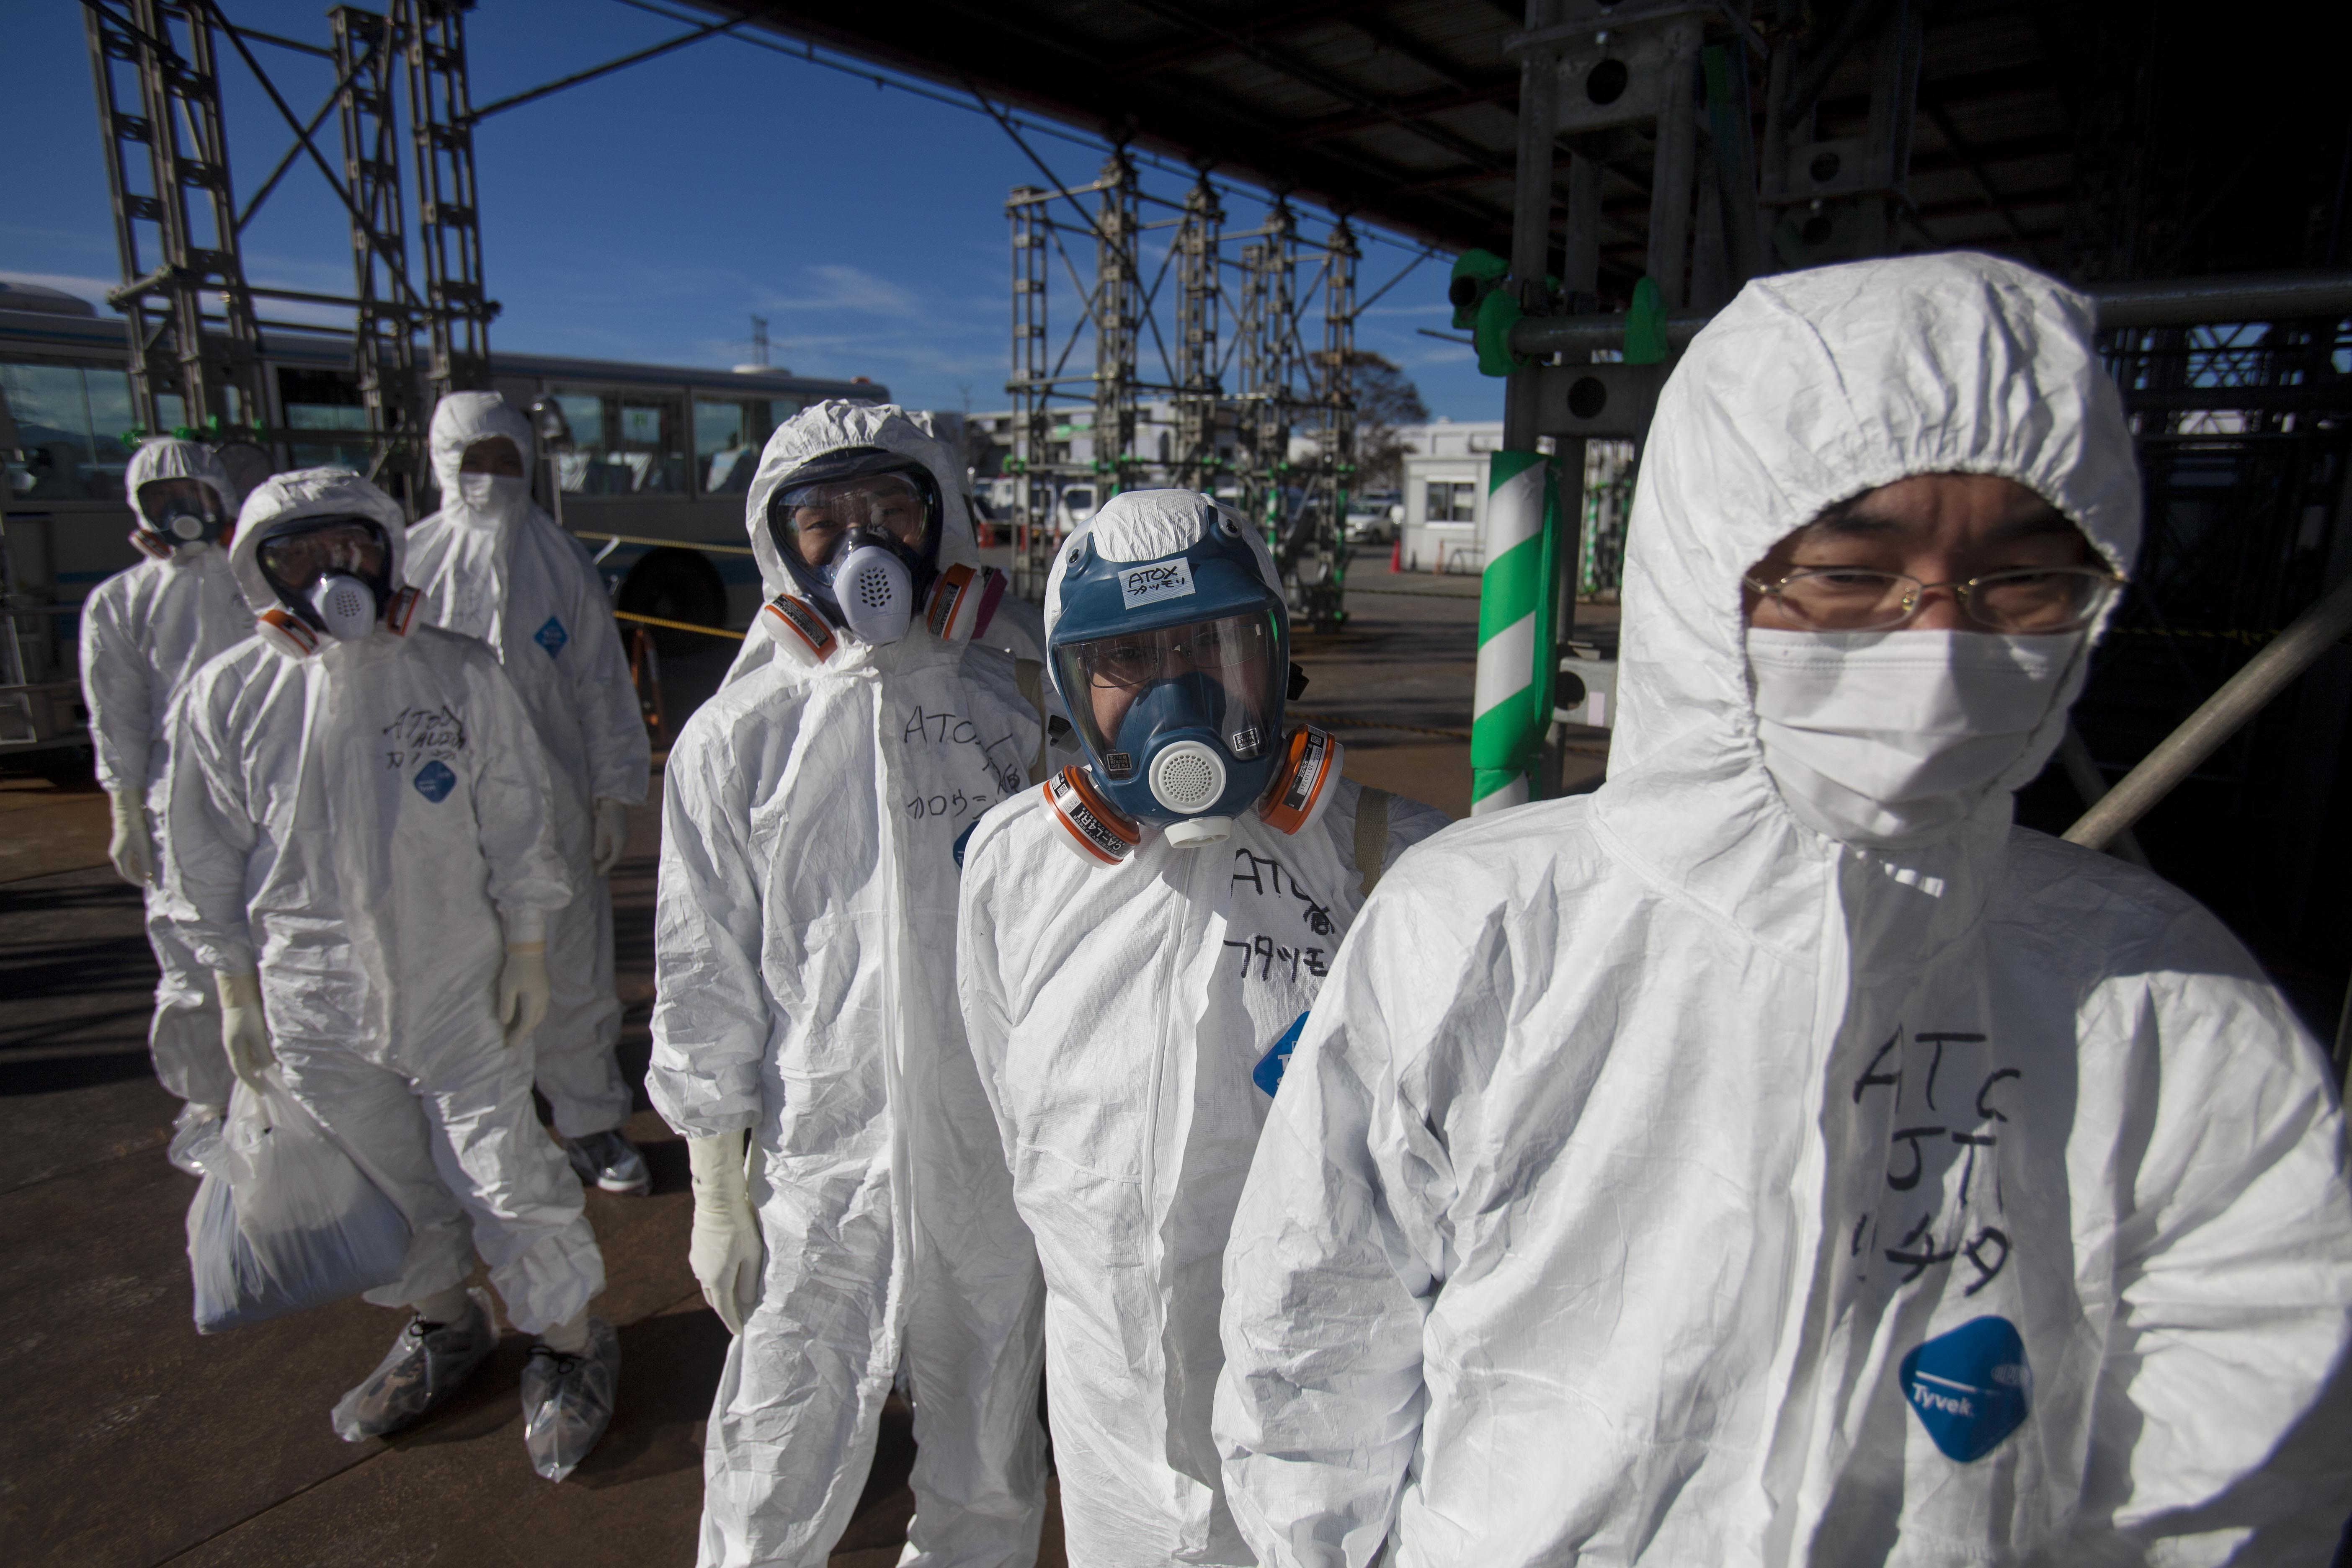 First look inside Fukushima nuclear plant - Photo 1 ...